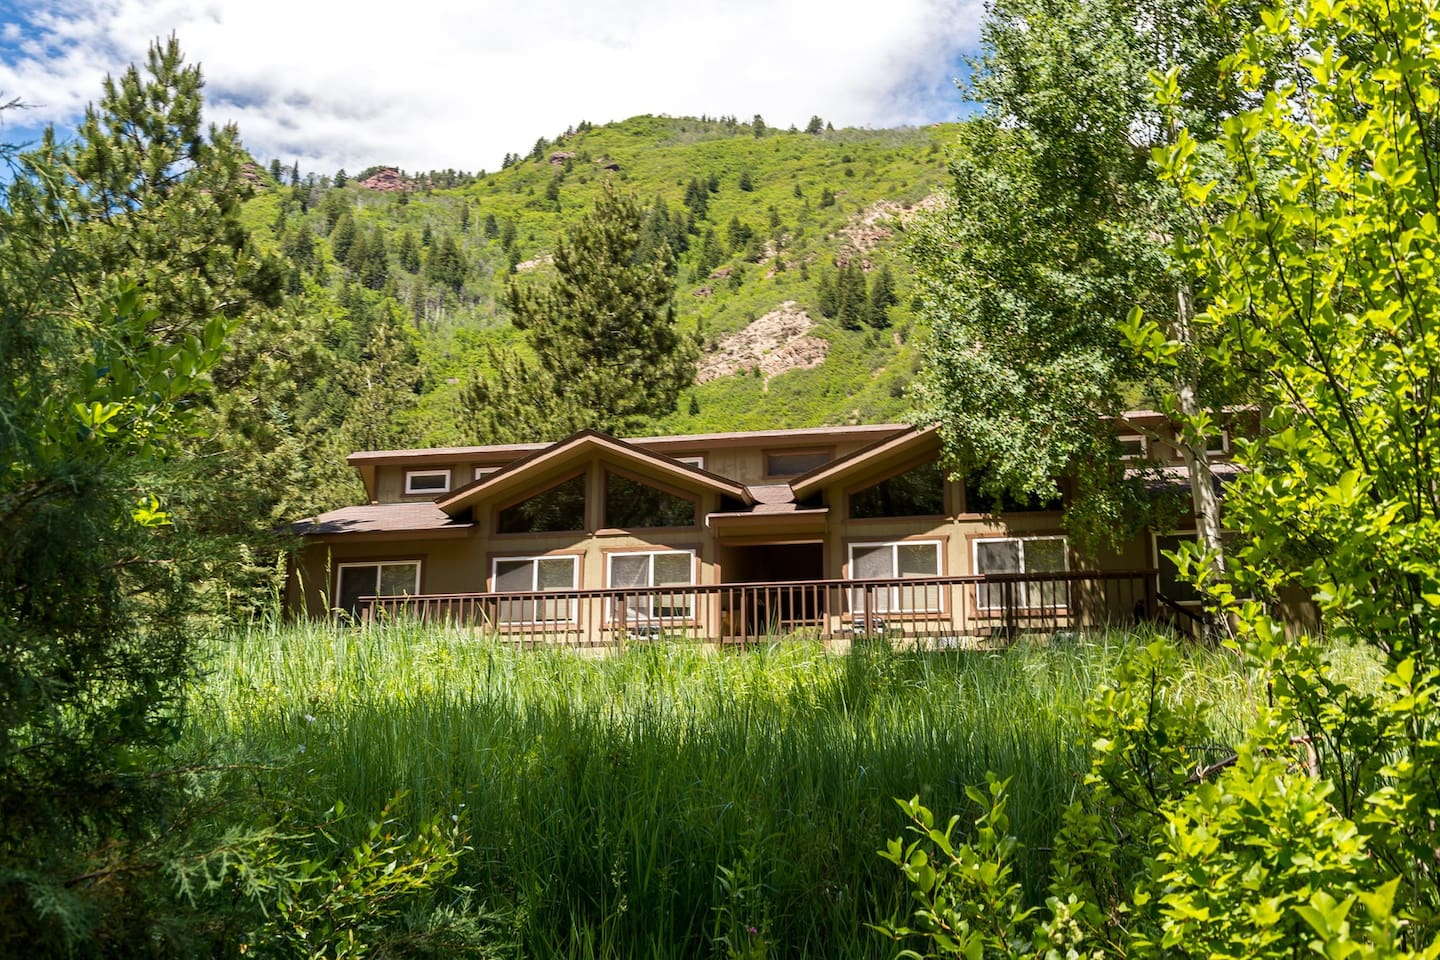 Cozy riverfront cabin w/ shared hot spring - nature preserve across the river